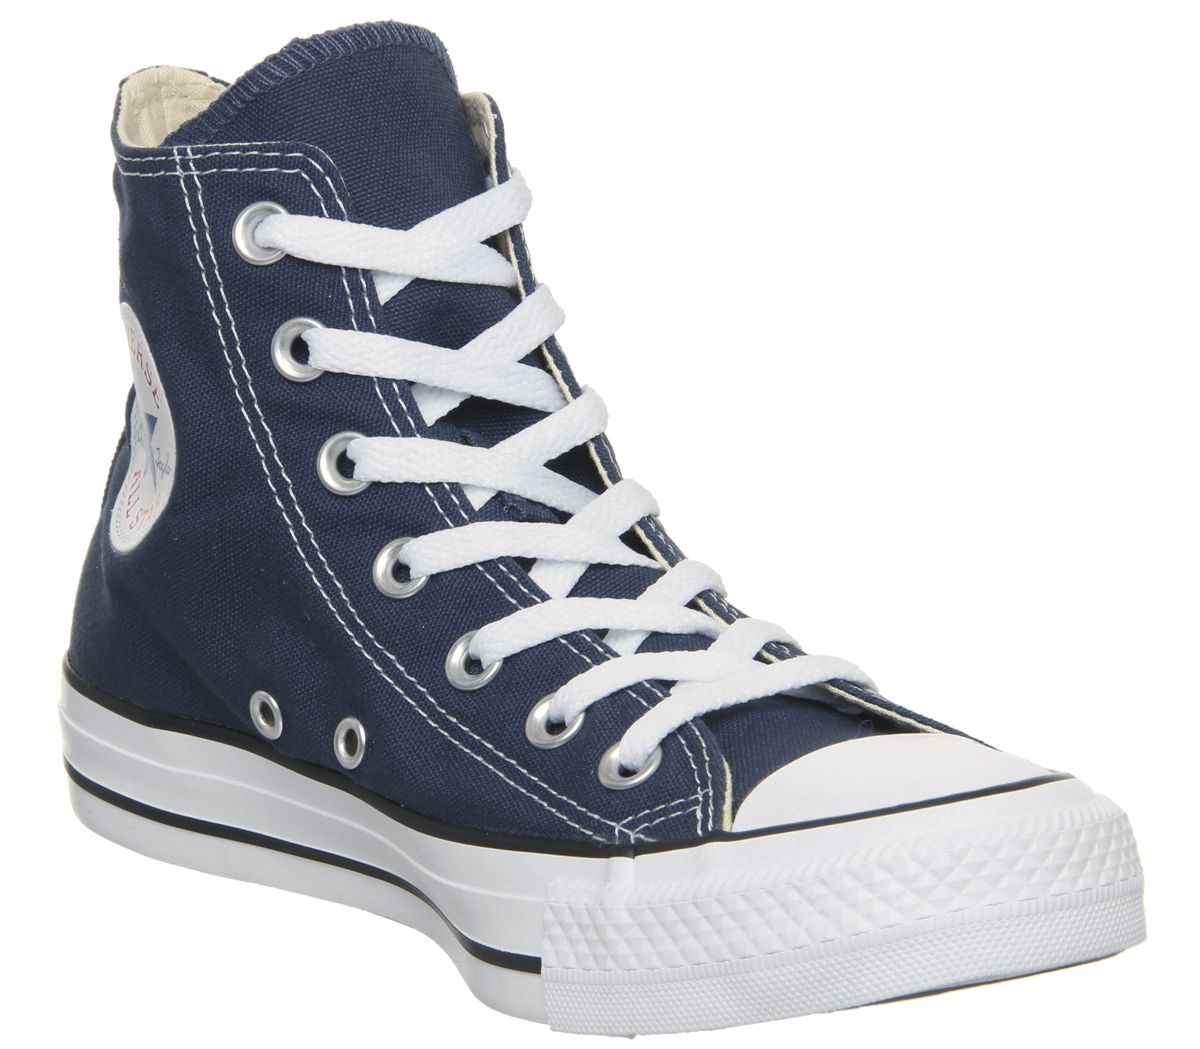 8ff8a87d515d Converse All Star Hi Navy Canvas - Unisex Sports